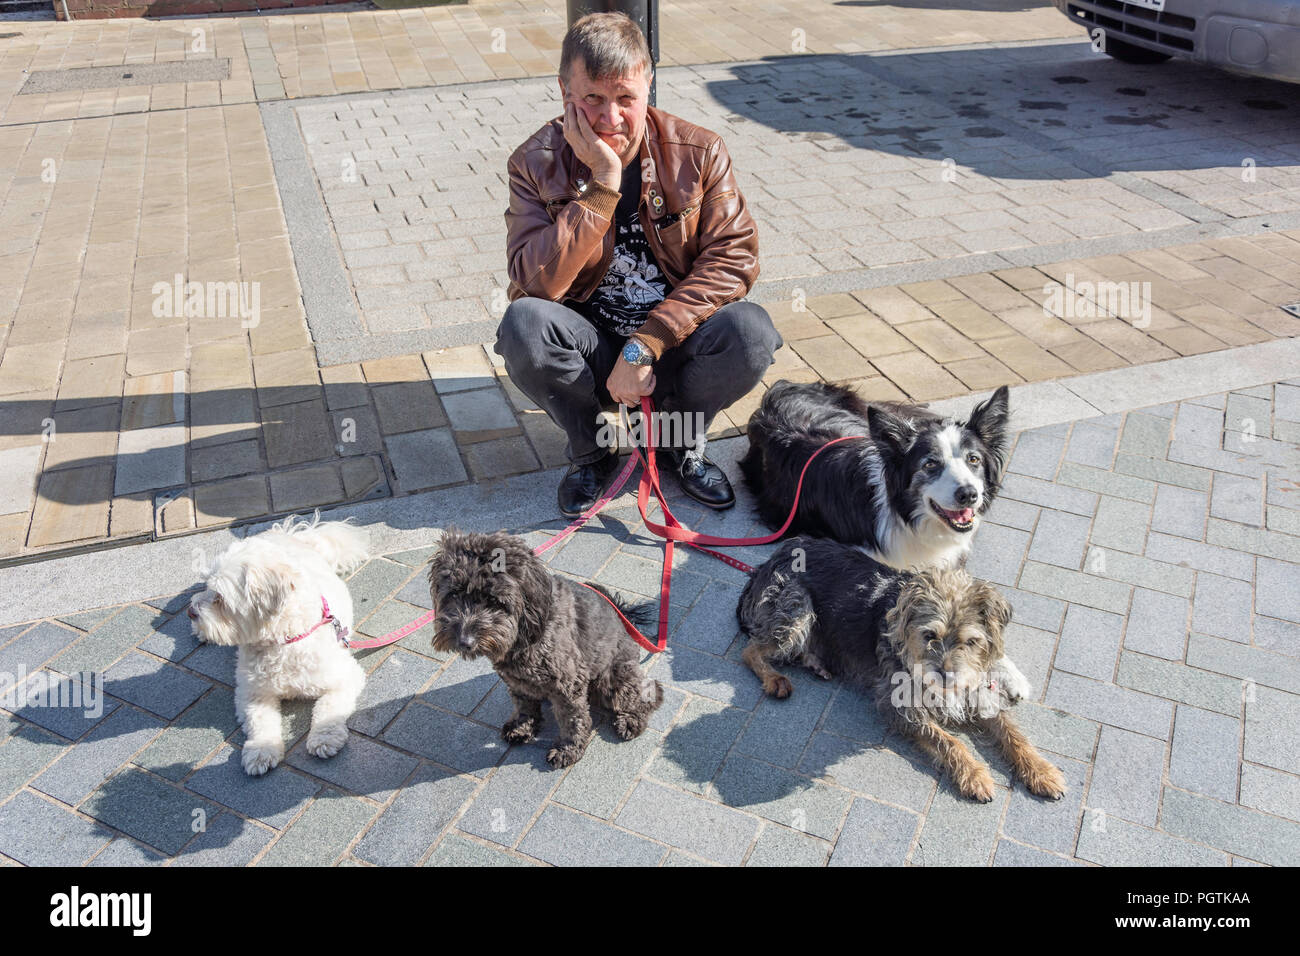 Dog walker with dogs on leashes, High Street, Bromsgrove, Worcestershire, England, United Kingdom - Stock Image